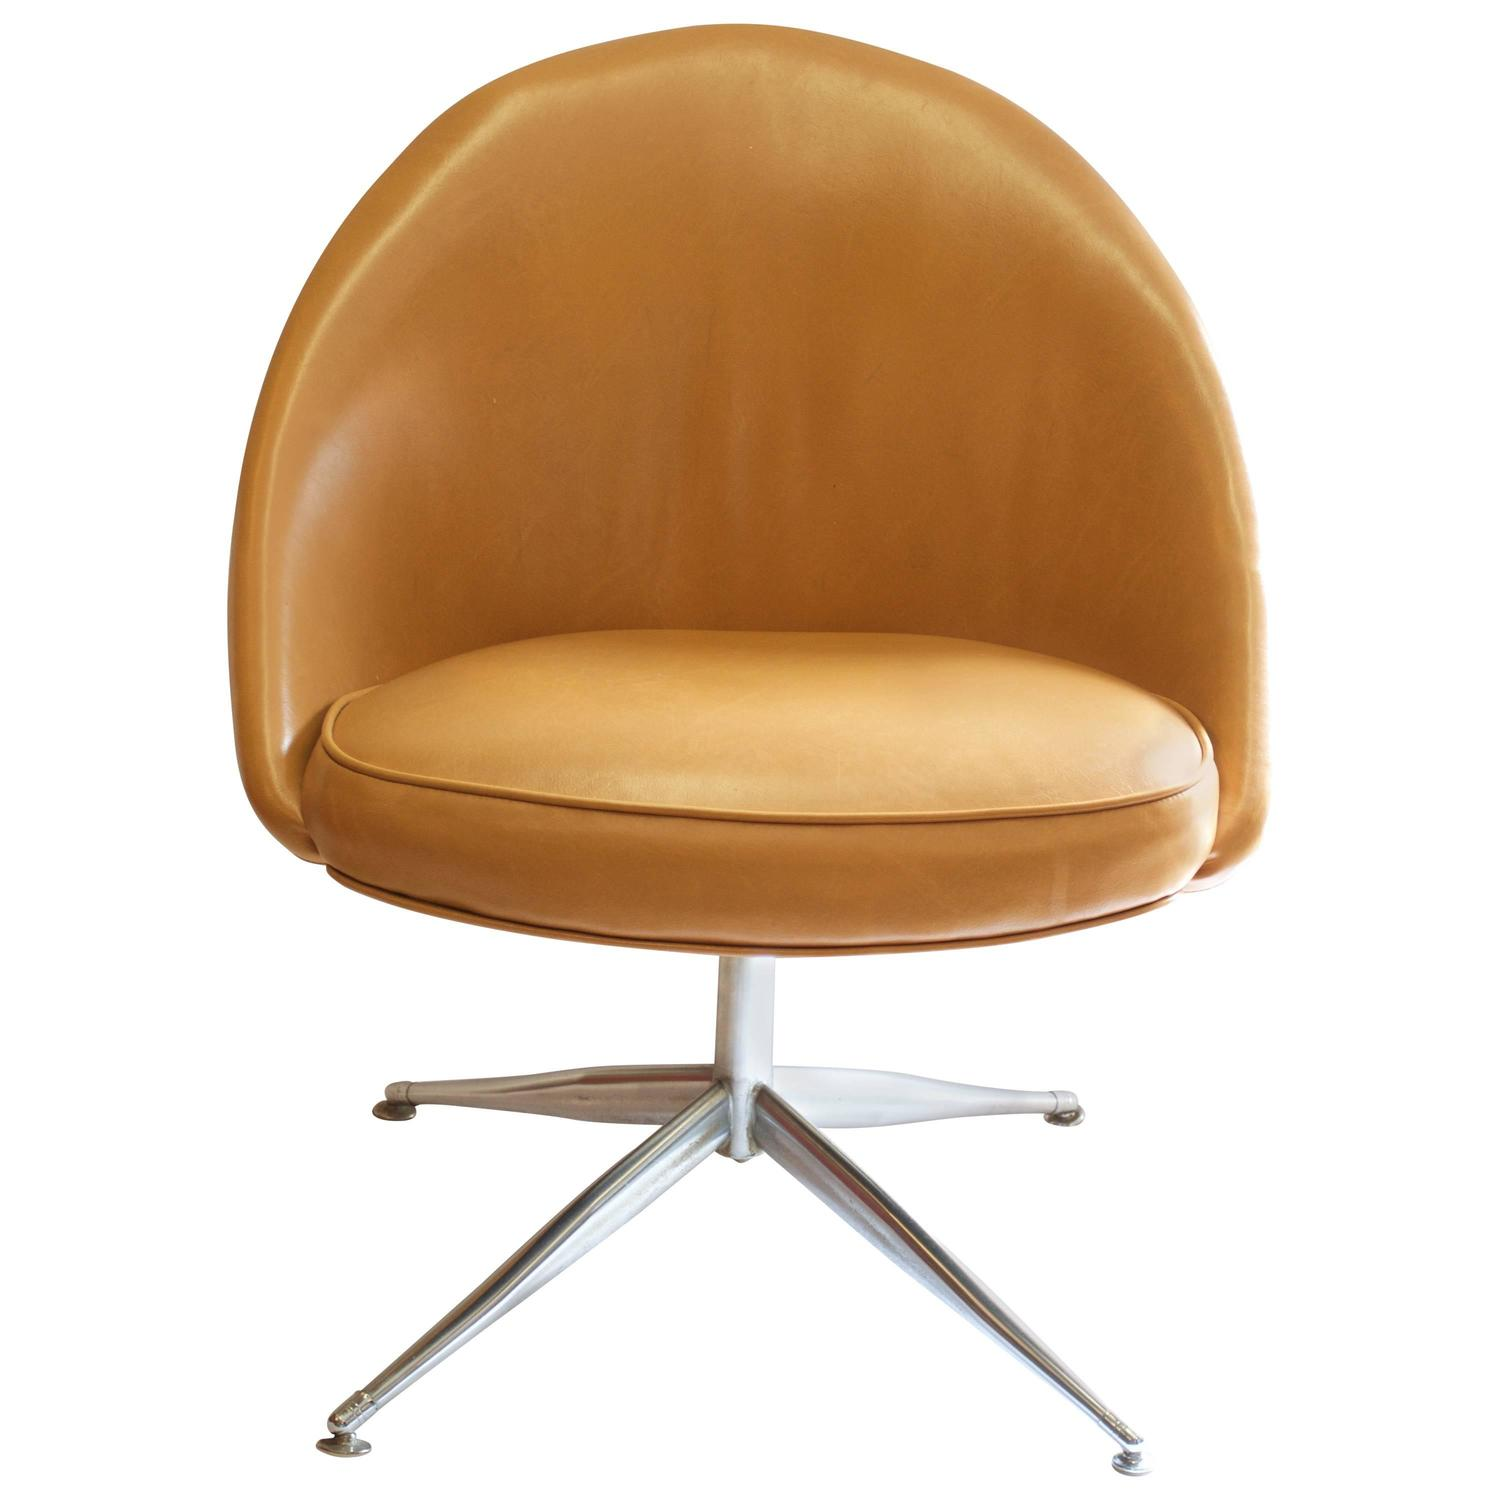 Vanity Slipper Chair with Chrome Base in Camel Leather at